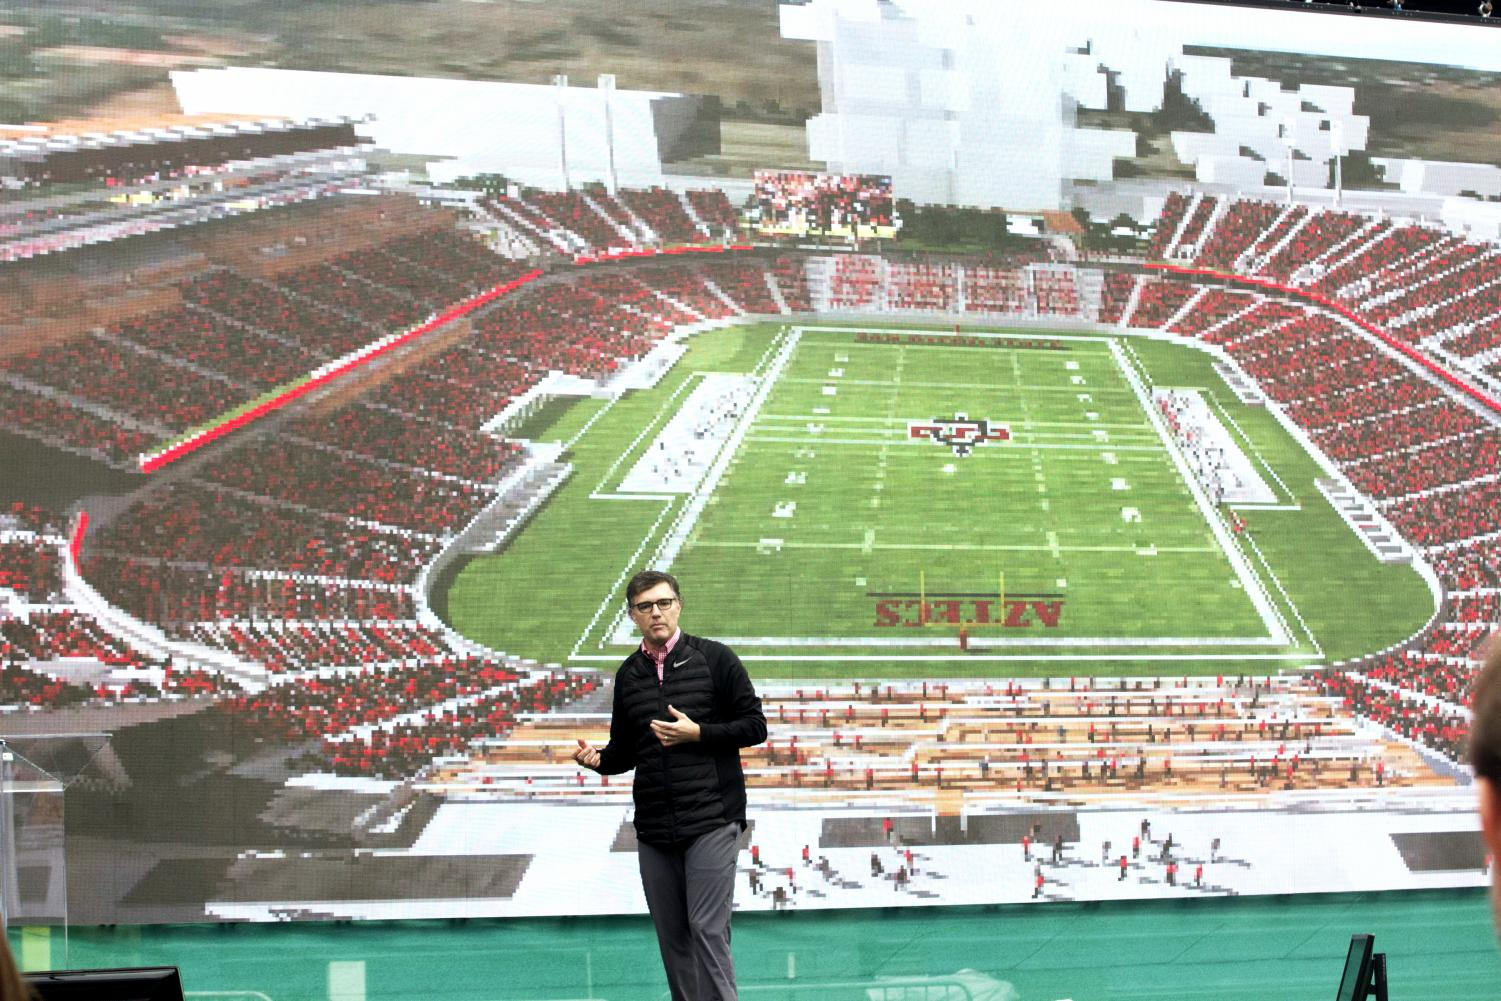 Director of Athletics John David Wicker unveils the renderings for SDSUs proposed Campus West stadium in November.